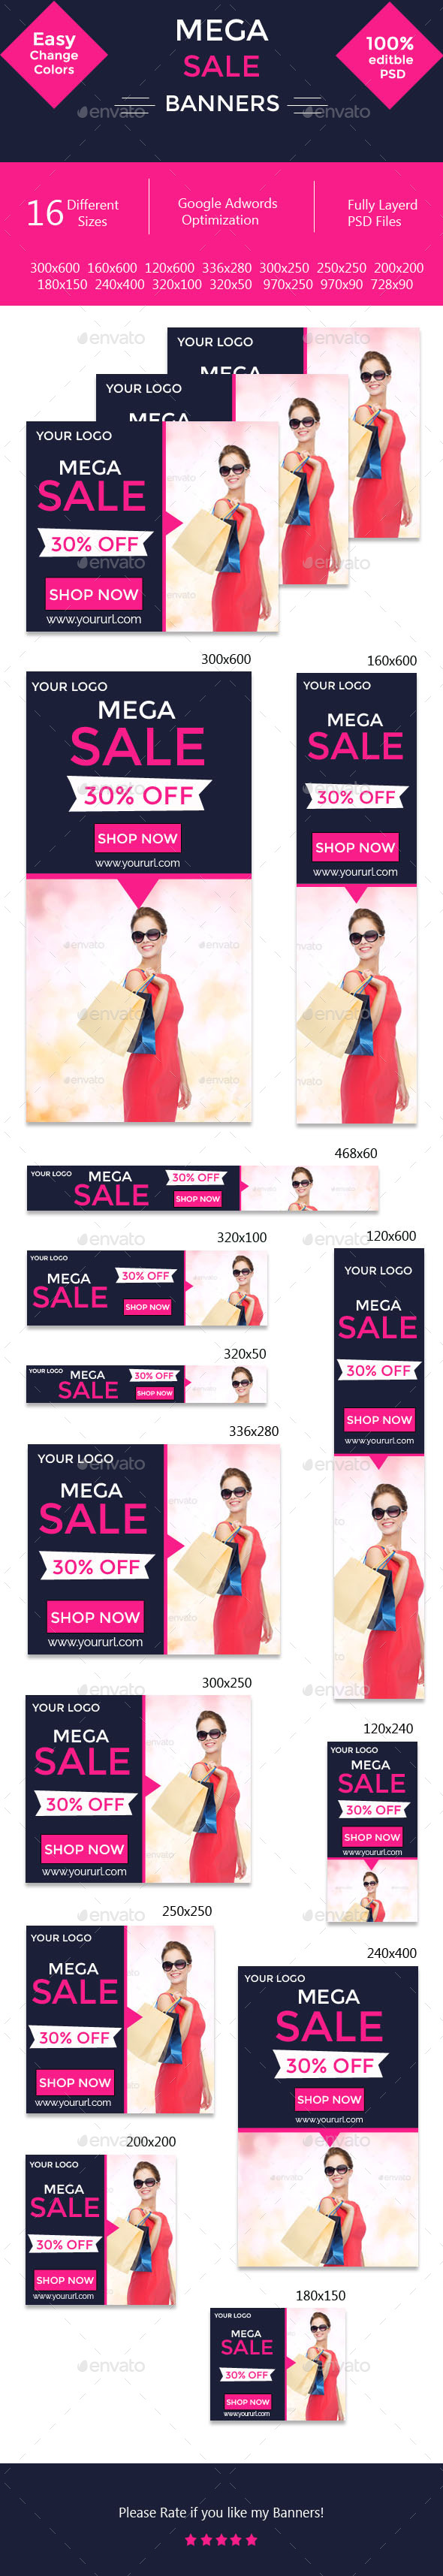 GraphicRiver Mega Sale Banners 10889135